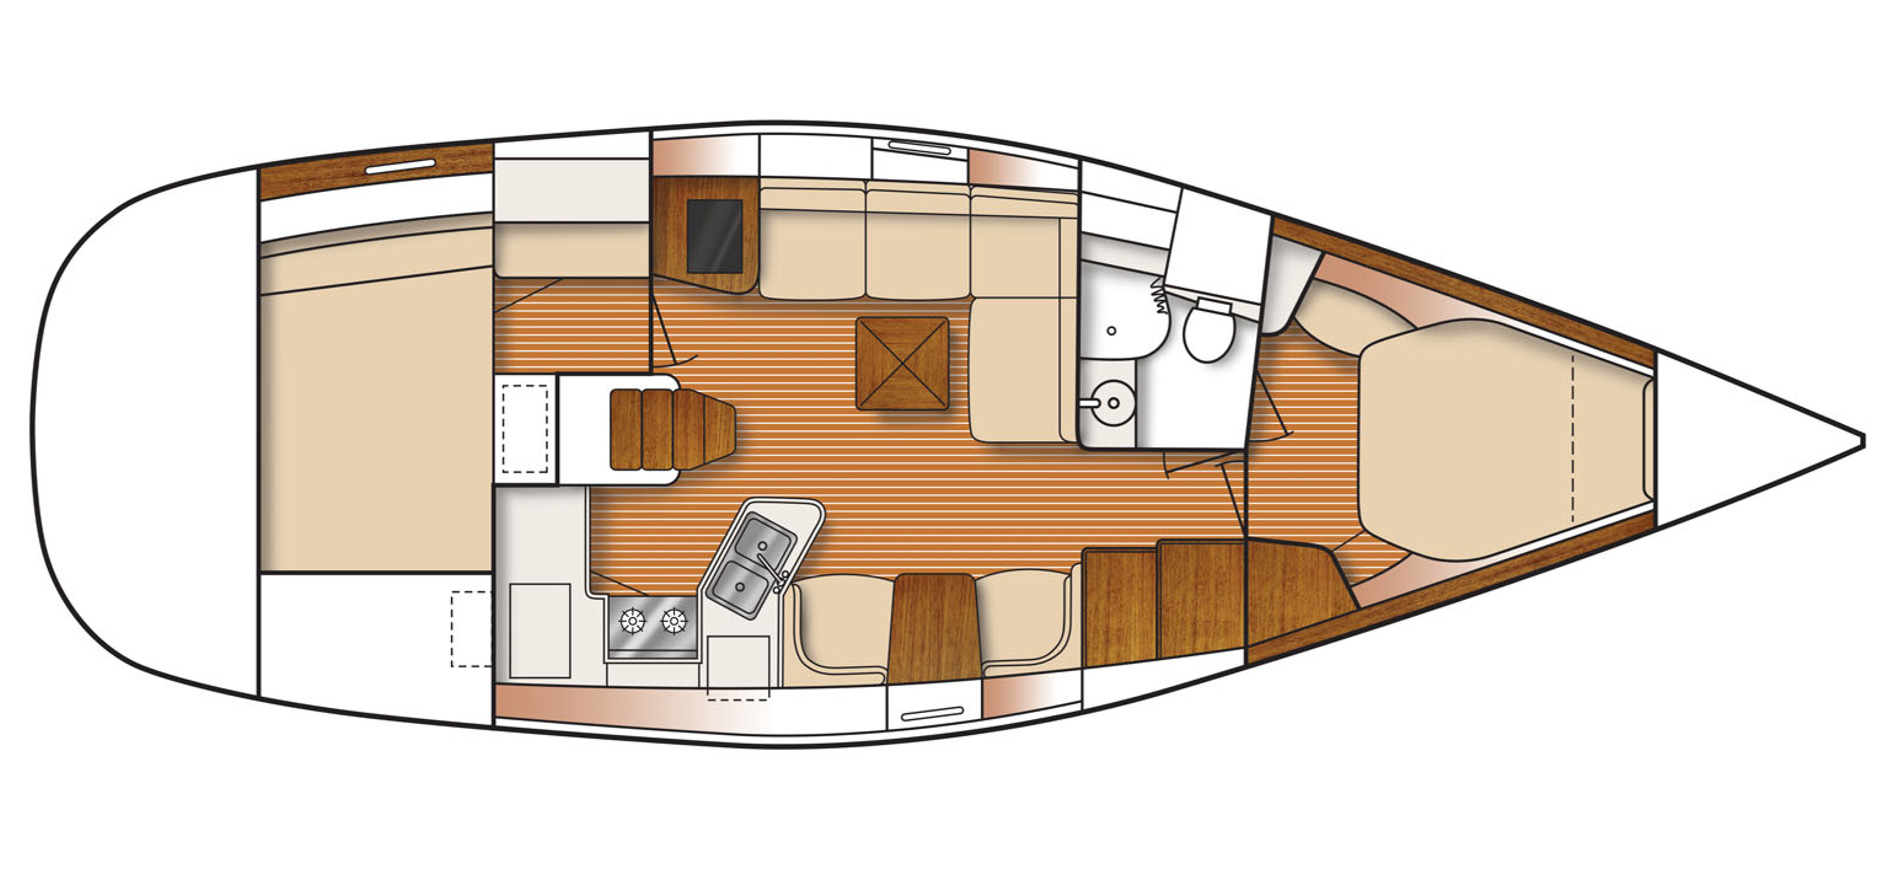 Catalina 385 layout